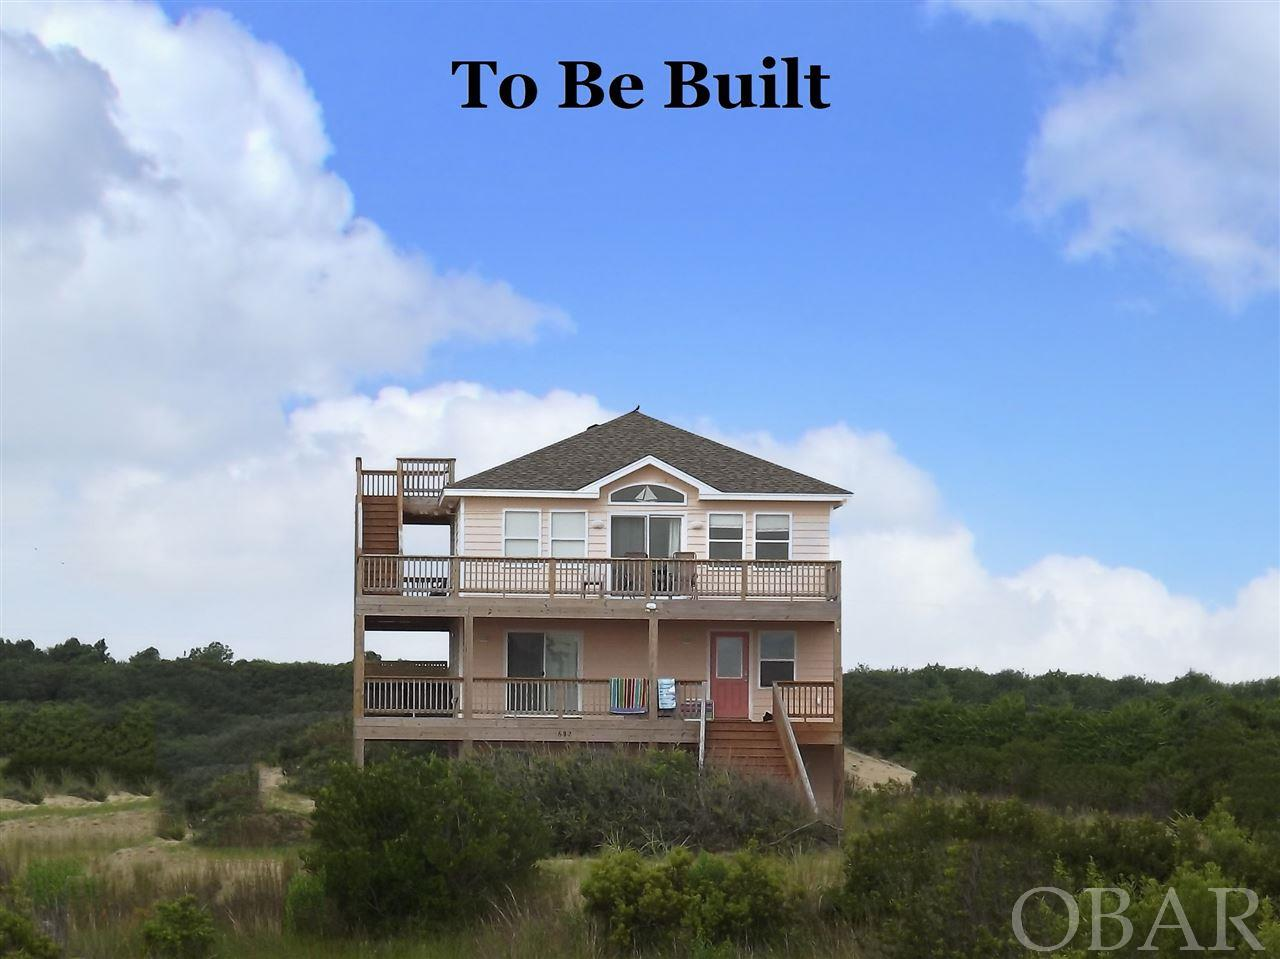 2166 Salmon Road, Corolla, NC 27927, 4 Bedrooms Bedrooms, ,3 BathroomsBathrooms,Residential,For sale,Salmon Road,104991